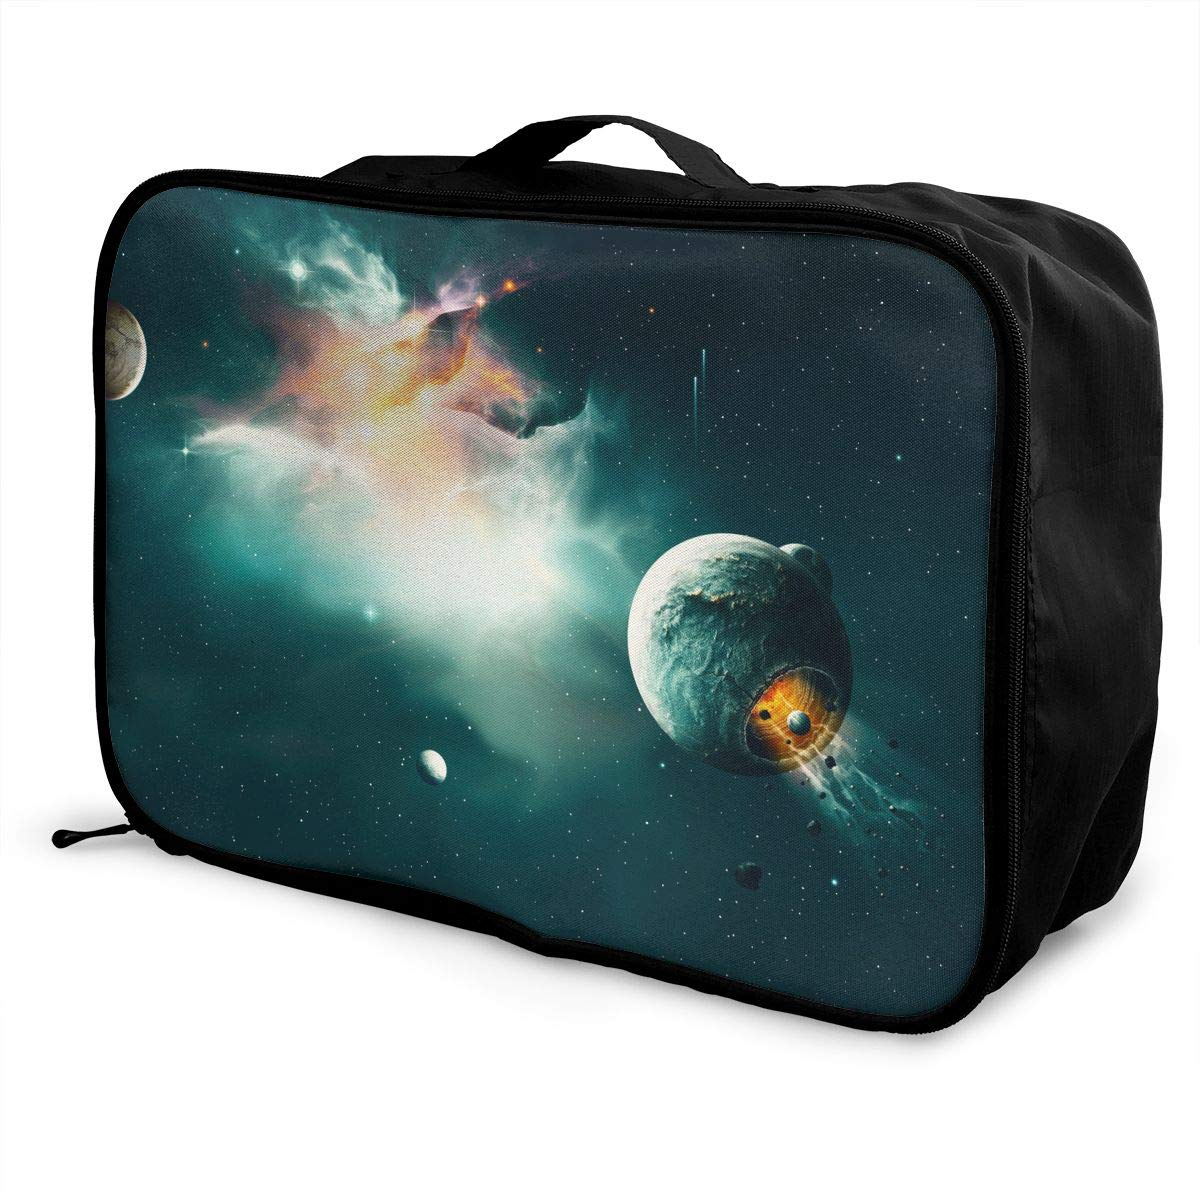 Travel Luggage Duffle Bag Lightweight Portable Handbag Fantasy Space Galaxy Stars Large Capacity Waterproof Foldable Storage Tote